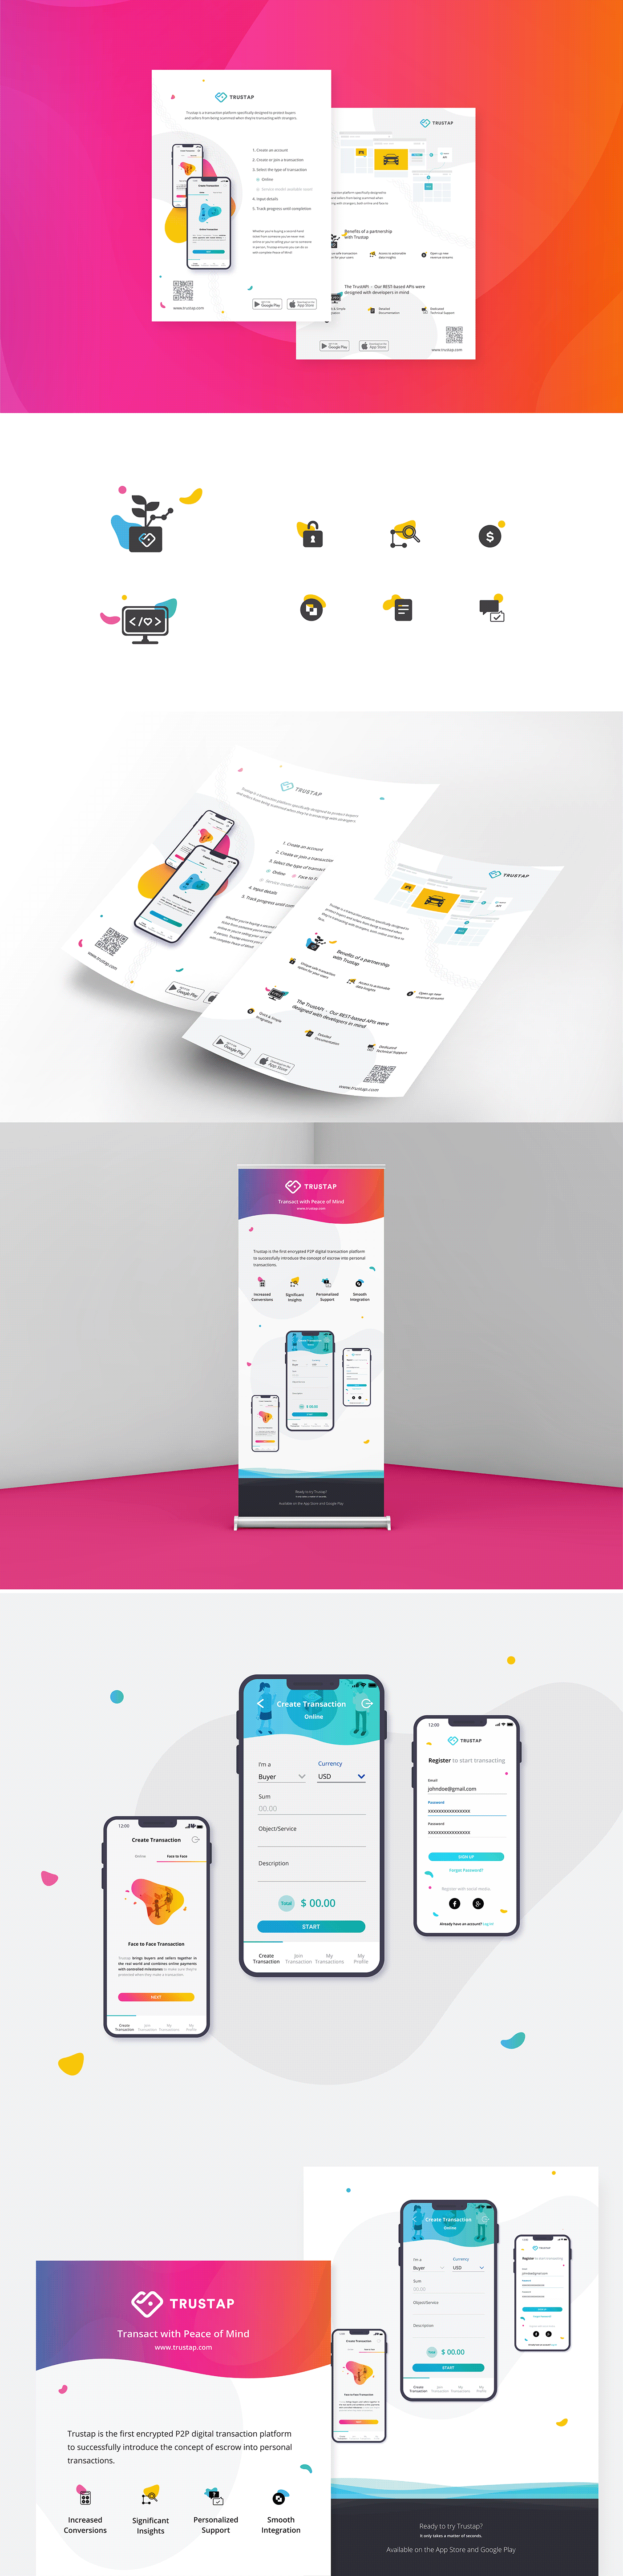 A set of flyers and banner designed to advertise an online transaction mobile app.